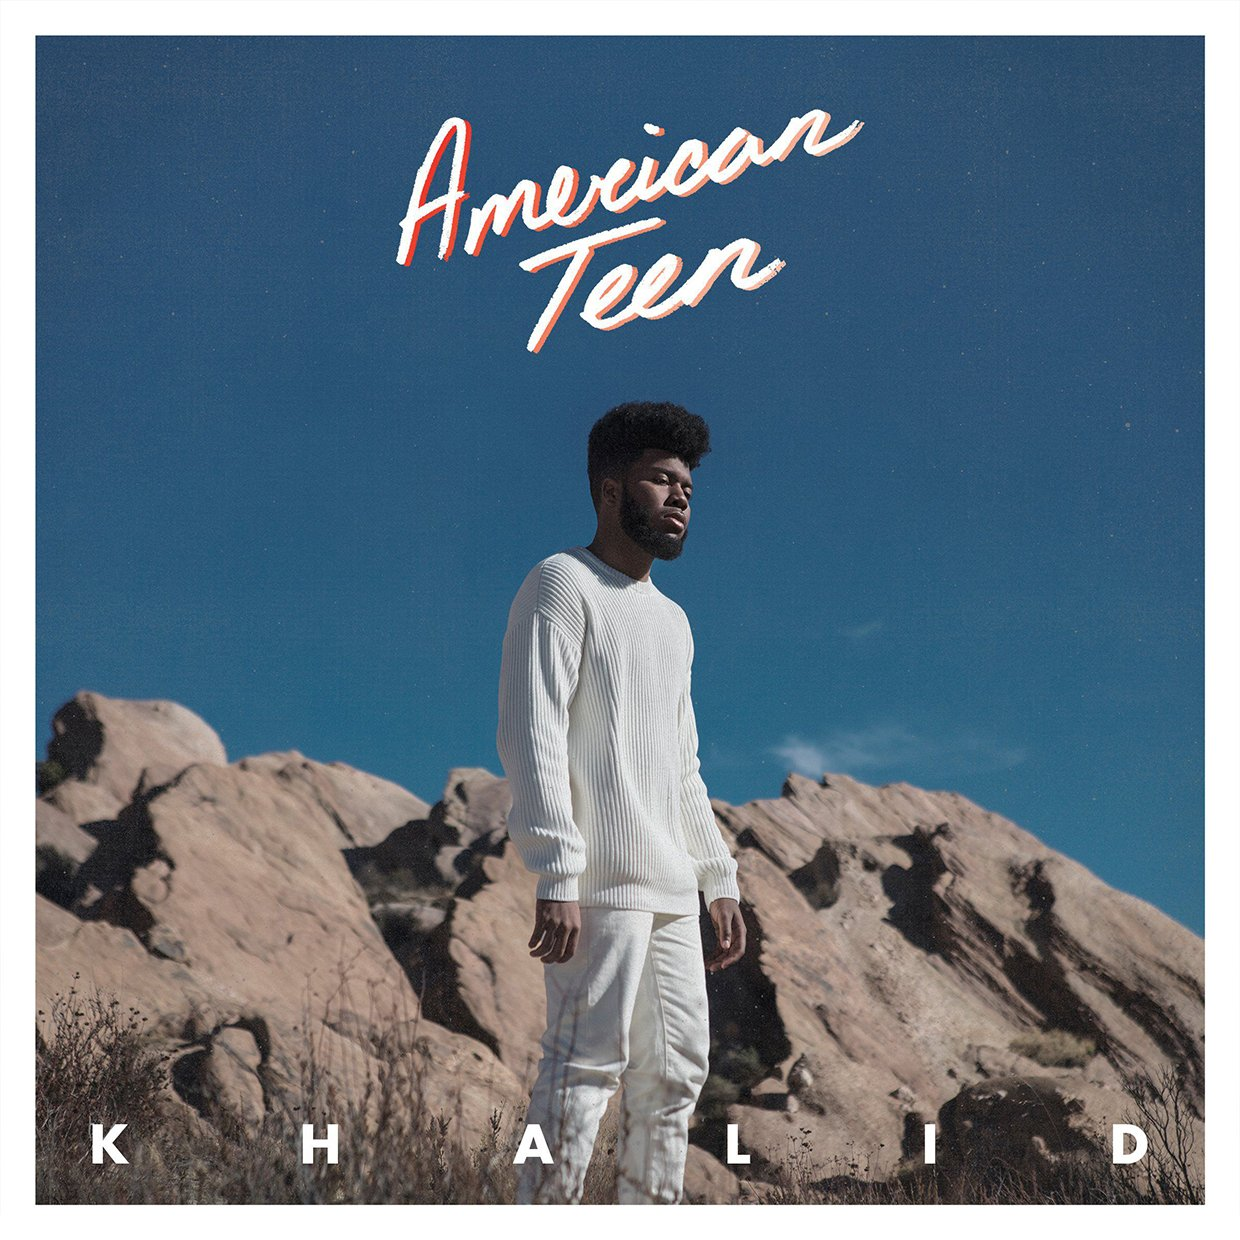 """.@thegreatkhalid's """"American Teen"""" is No. 5 on our top 10 albums of the year! 😎 https://t.co/9v0F0IttDJ https://t.co/vvnecdyOcU"""